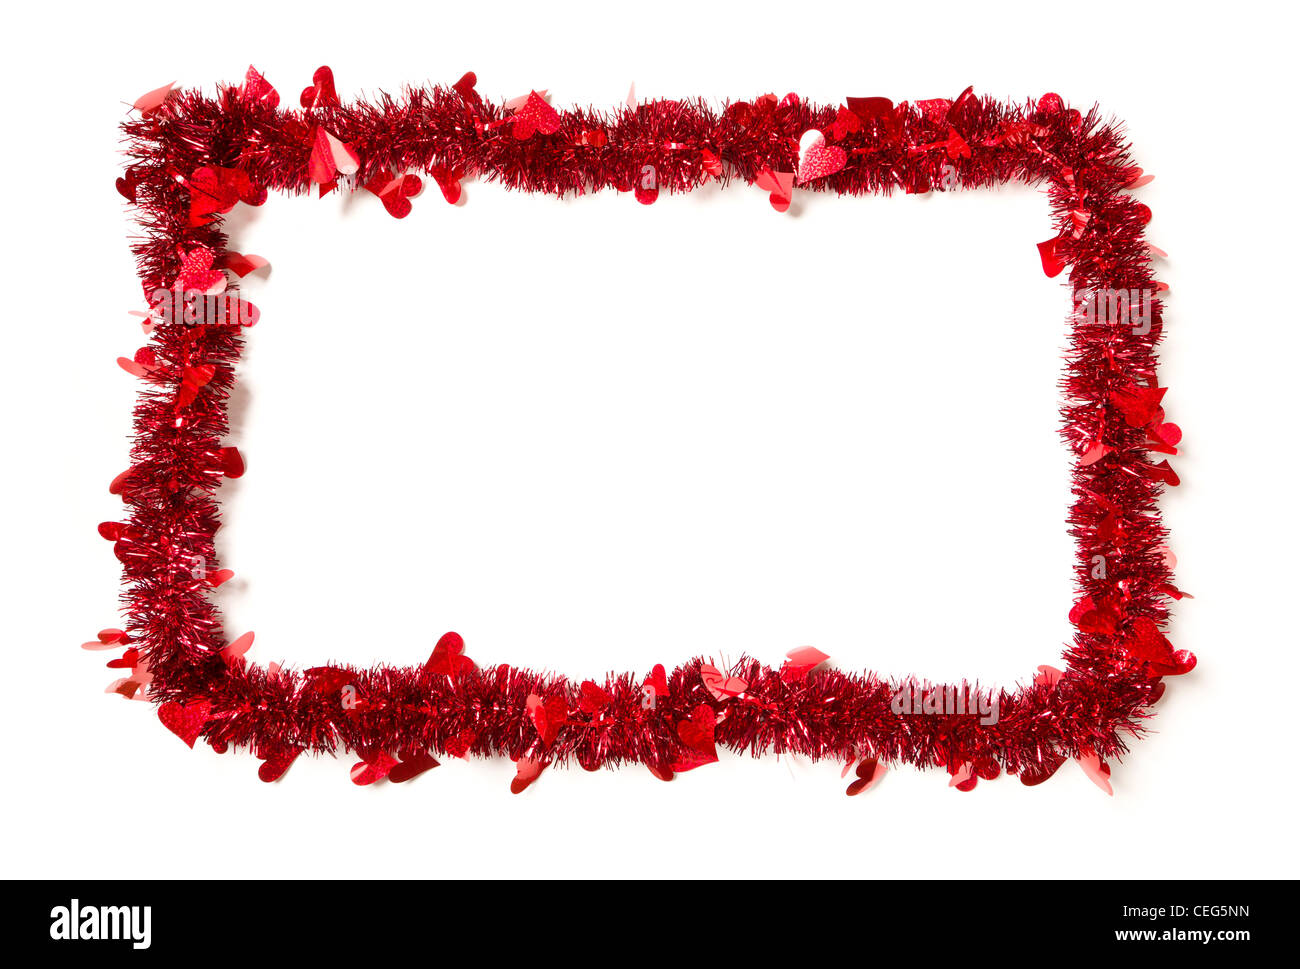 Red Tinsel with Hearts Border Frame Shape on a White Background Ready For Your Own Message. - Stock Image